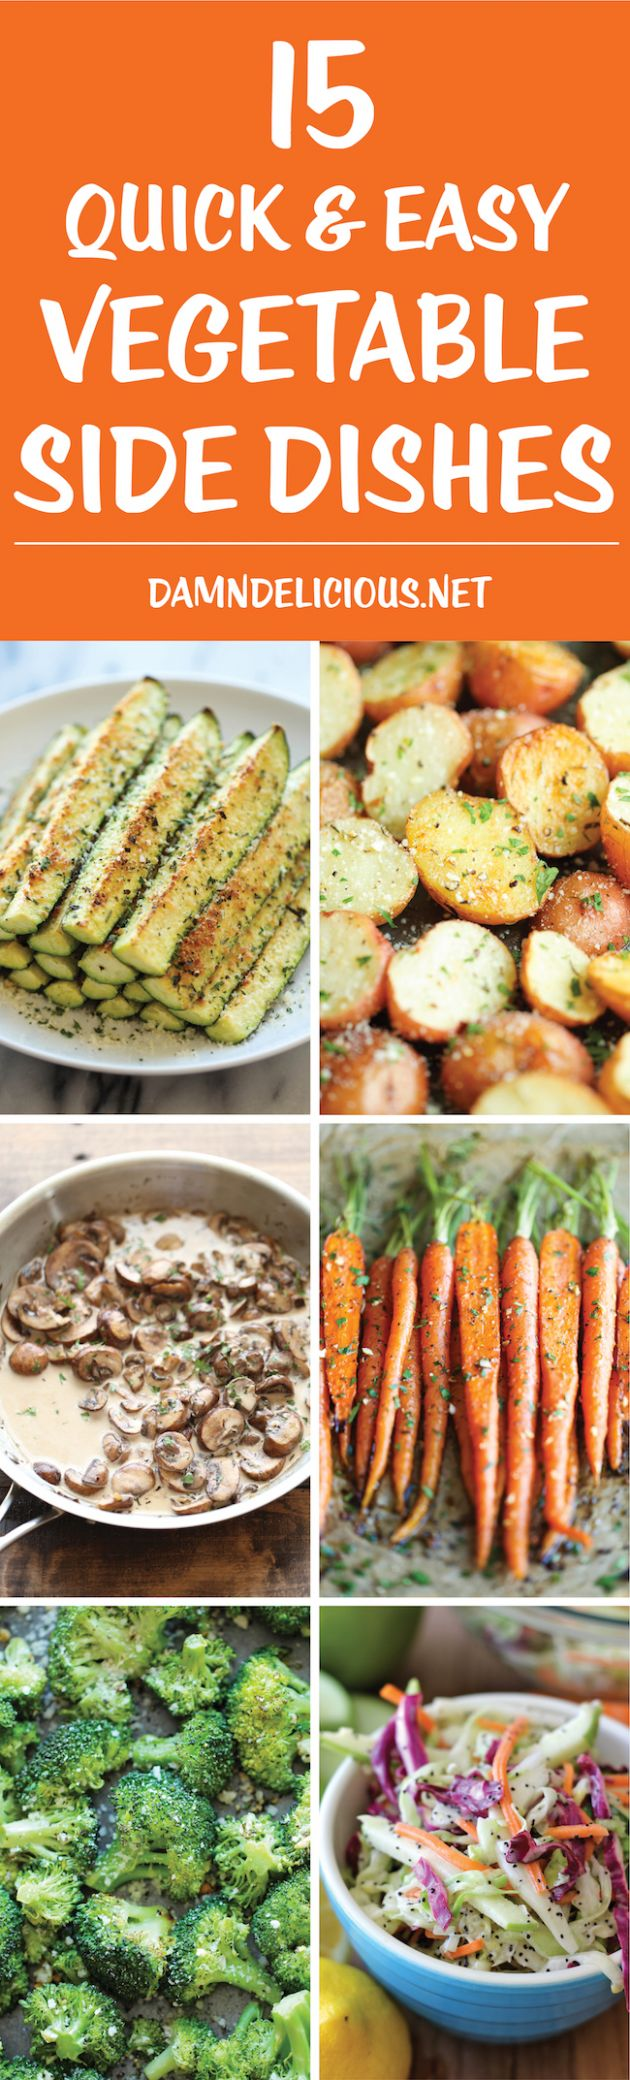 10 Quick and Easy Vegetable Side Dishes - Damn Delicious - Vegetable Recipes With Ingredients And Procedure